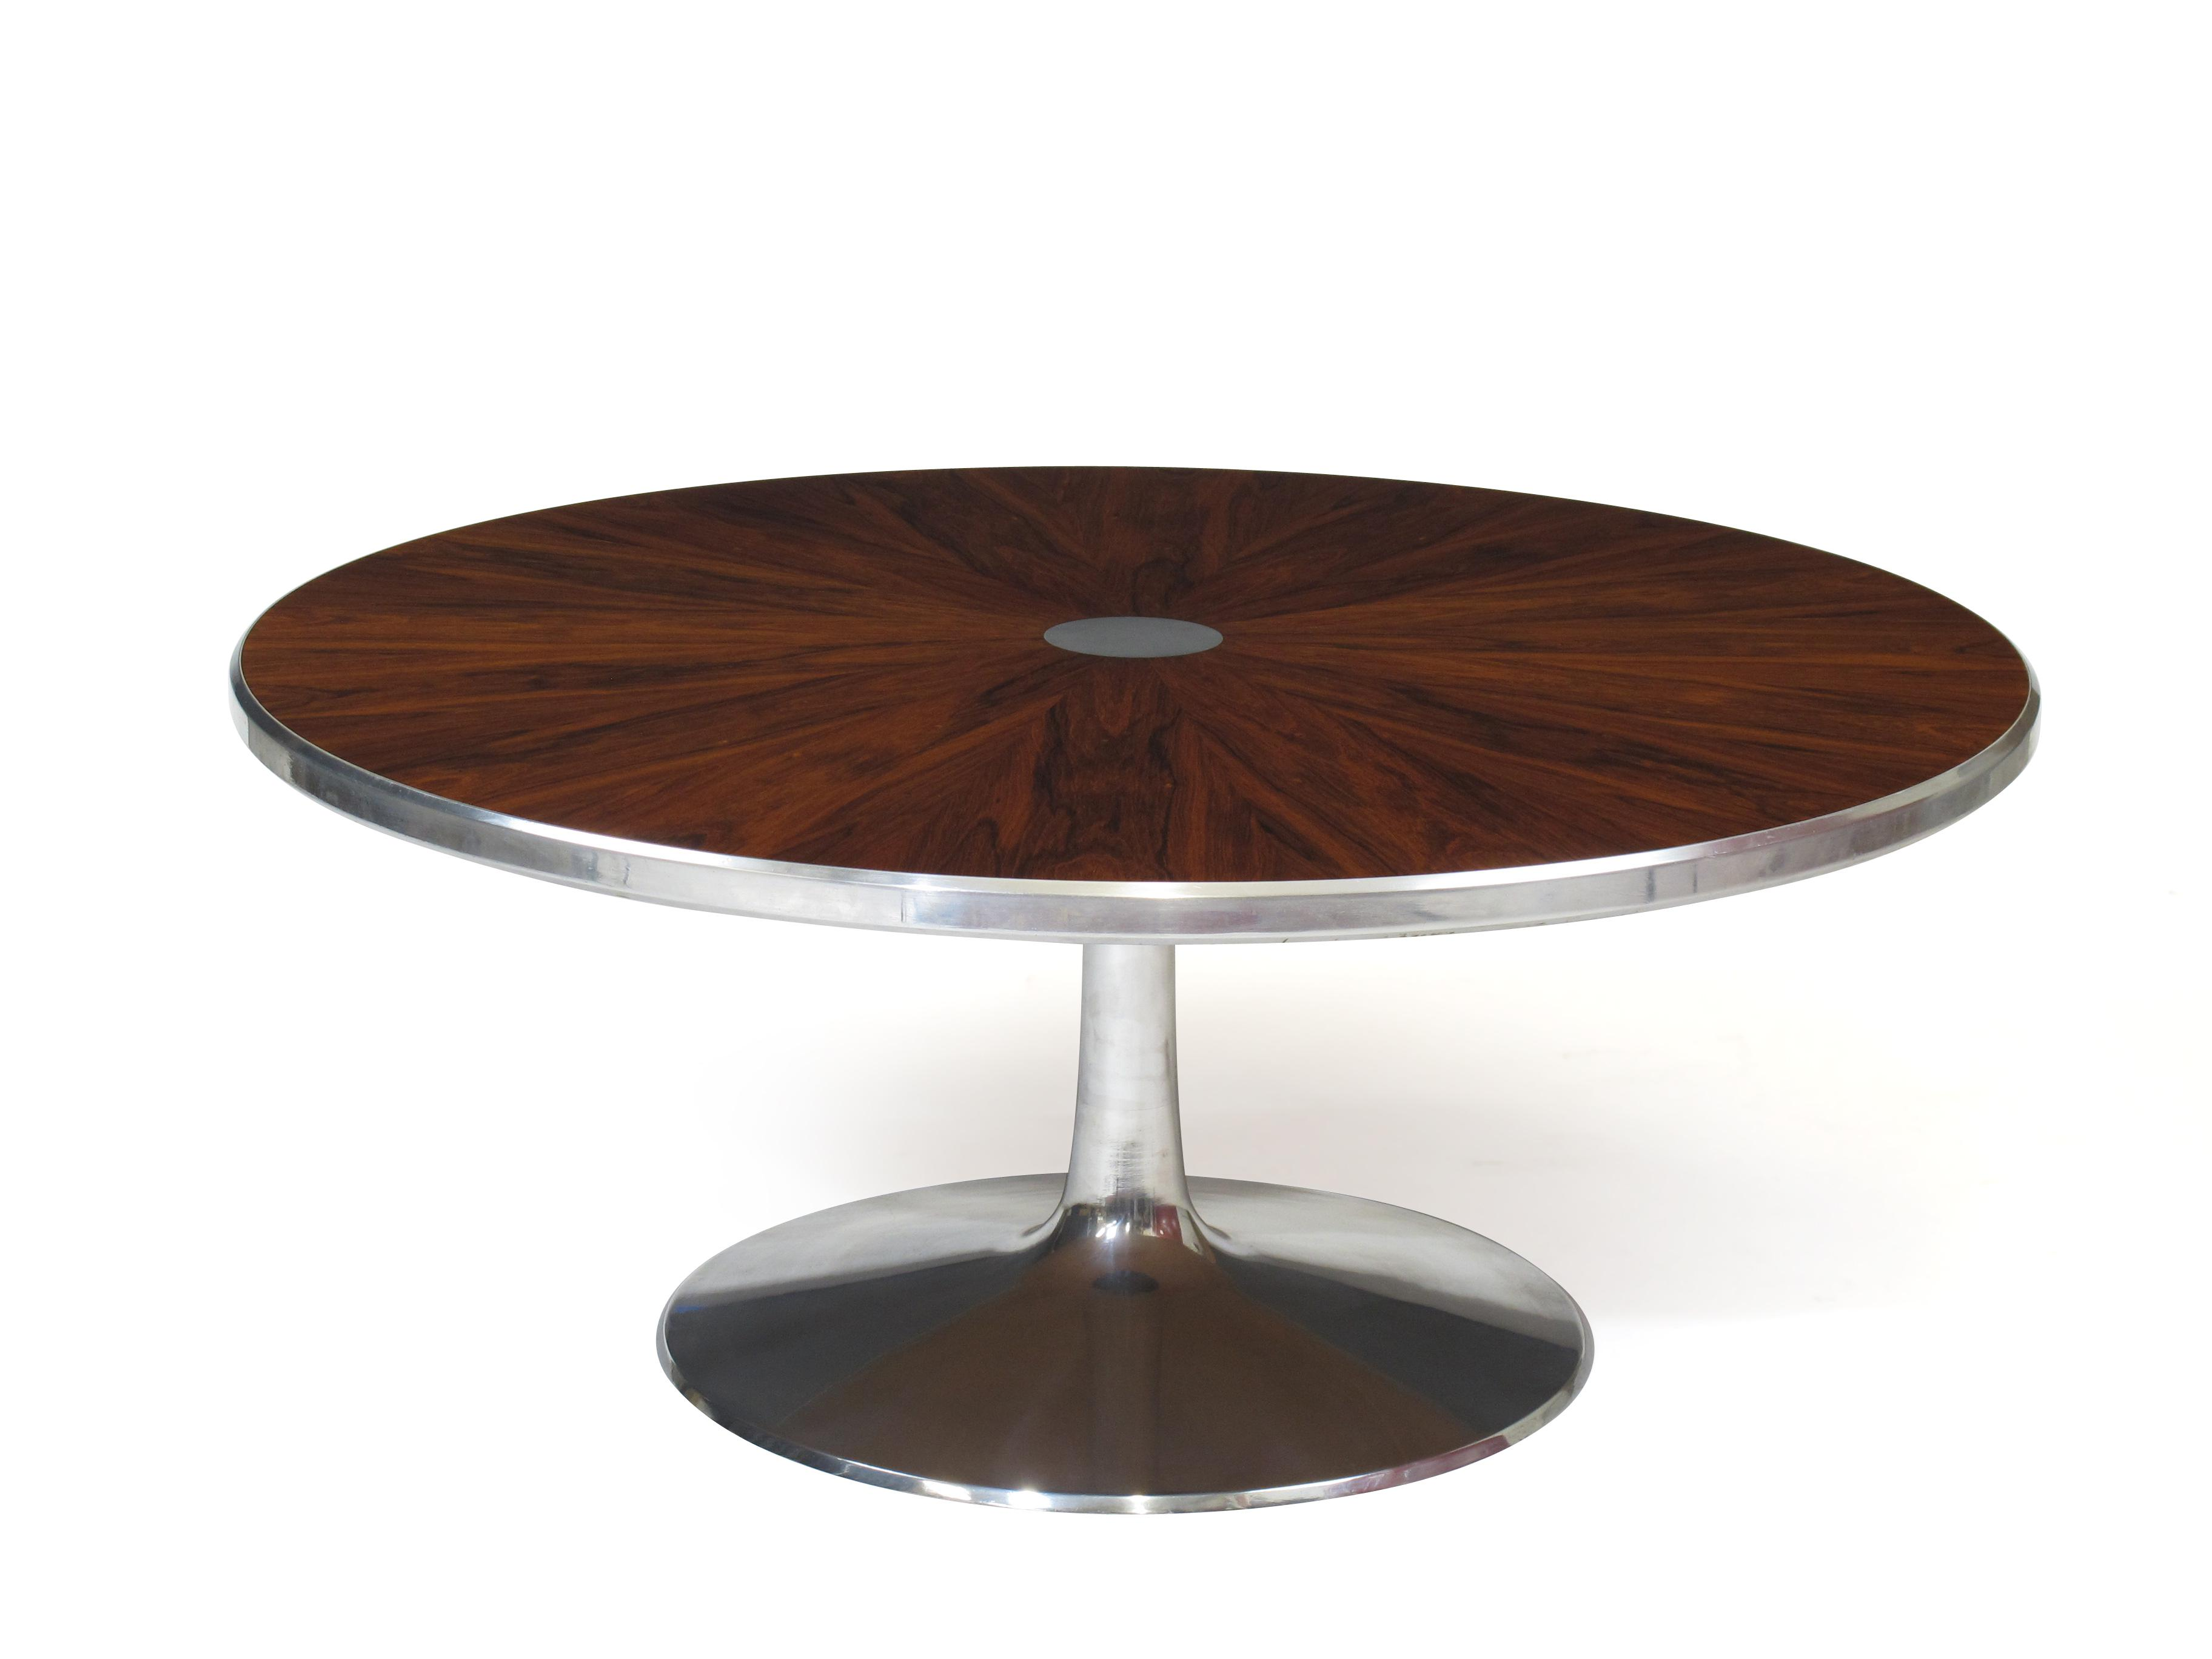 Steen Ostergaard For Poul Cadovius Chrome Pedestal Rosewood Coffee Table    Image 3 Of 10